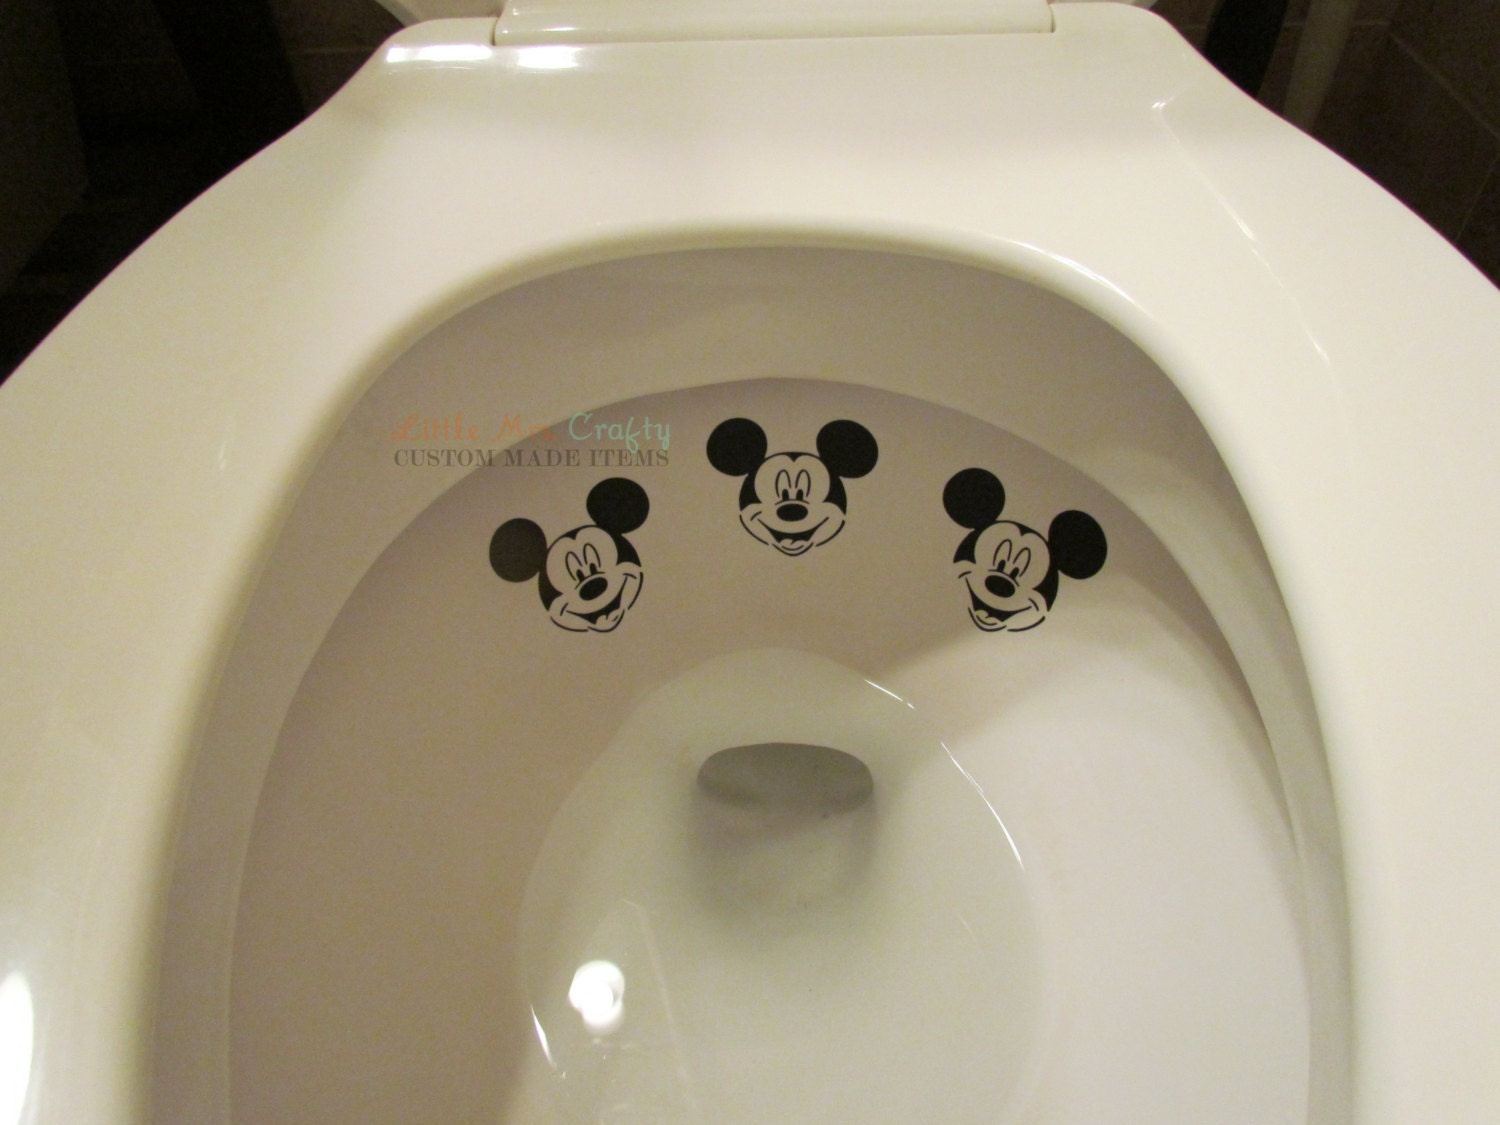 Digital Bathroom Scale Accuracy - Mickey mouse bathroom accessories